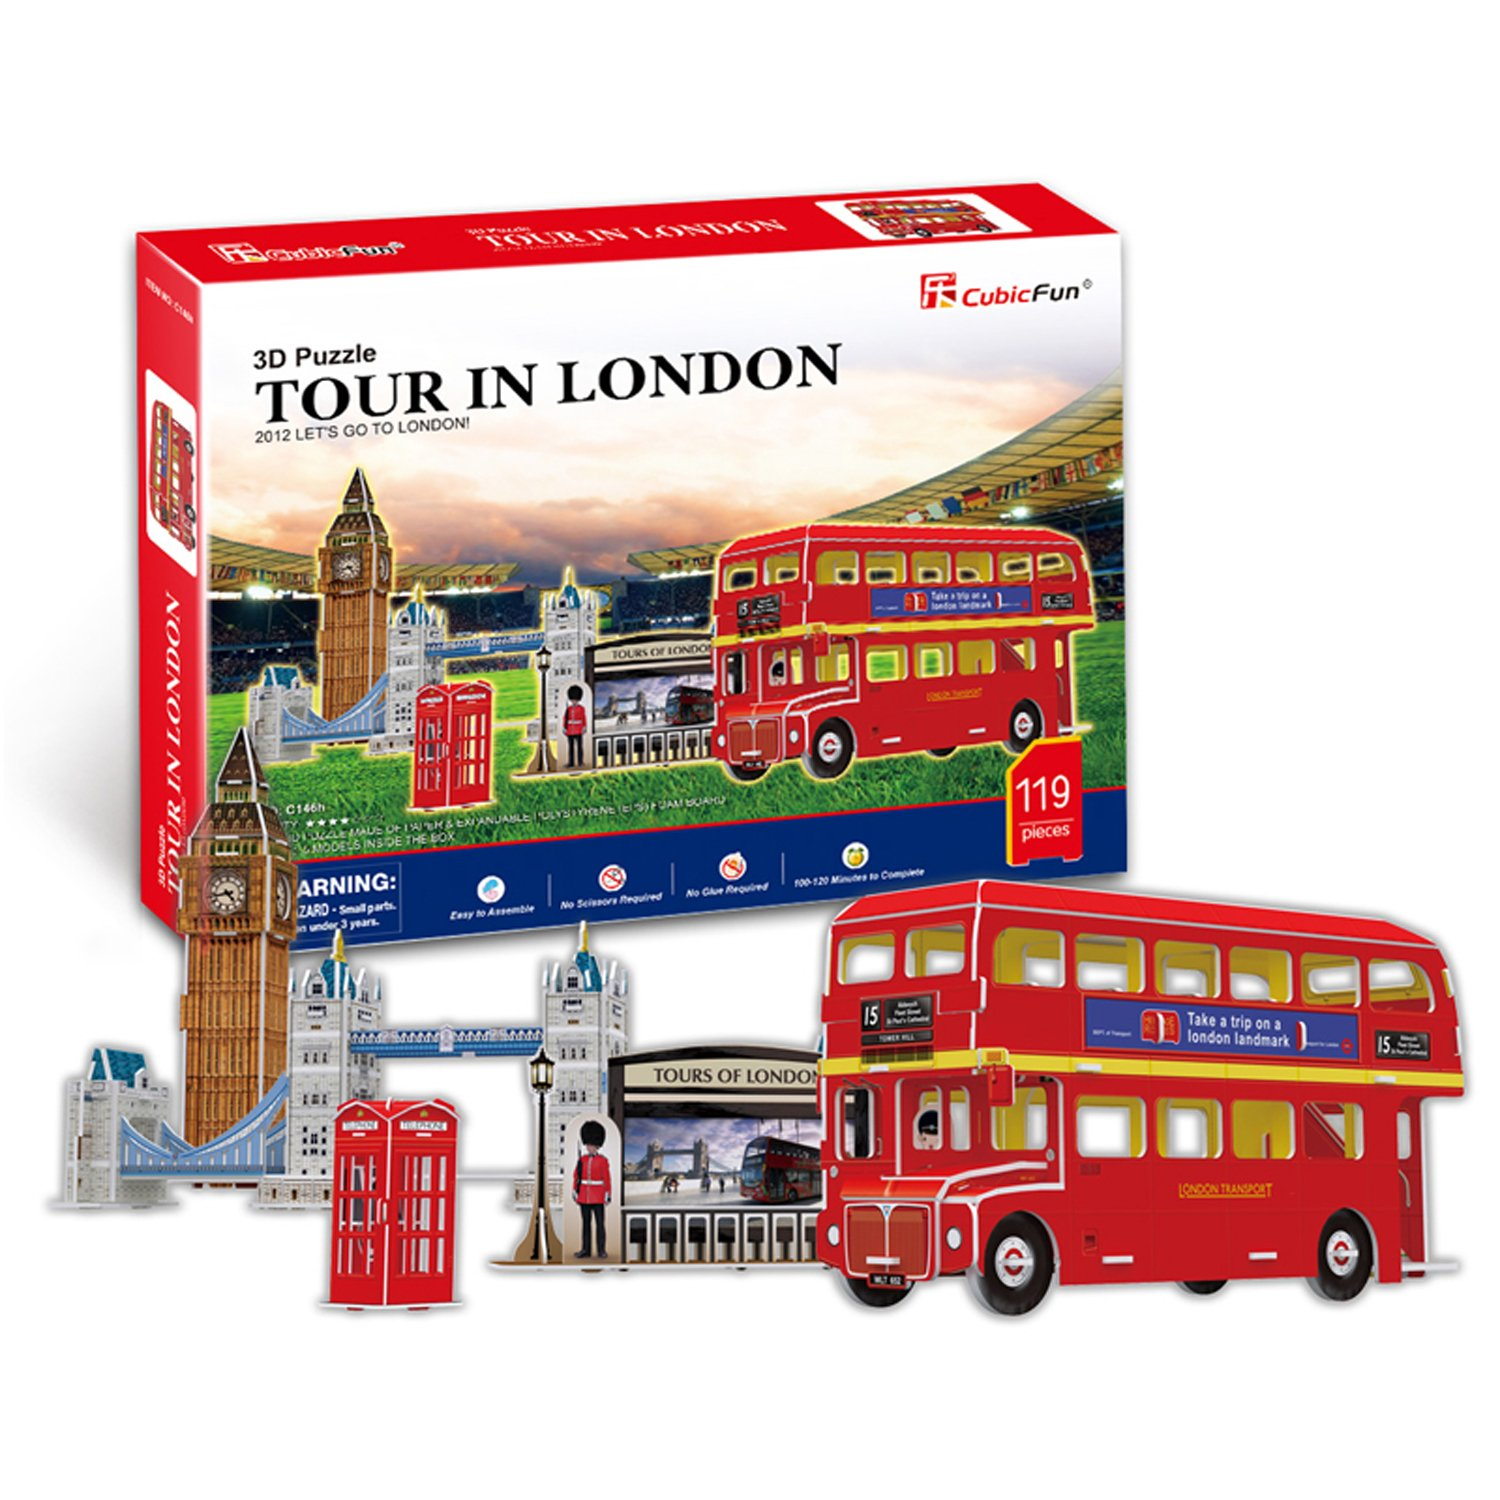 CubicFun 3D Puzzle C-Series Tour in London Five Puzzles